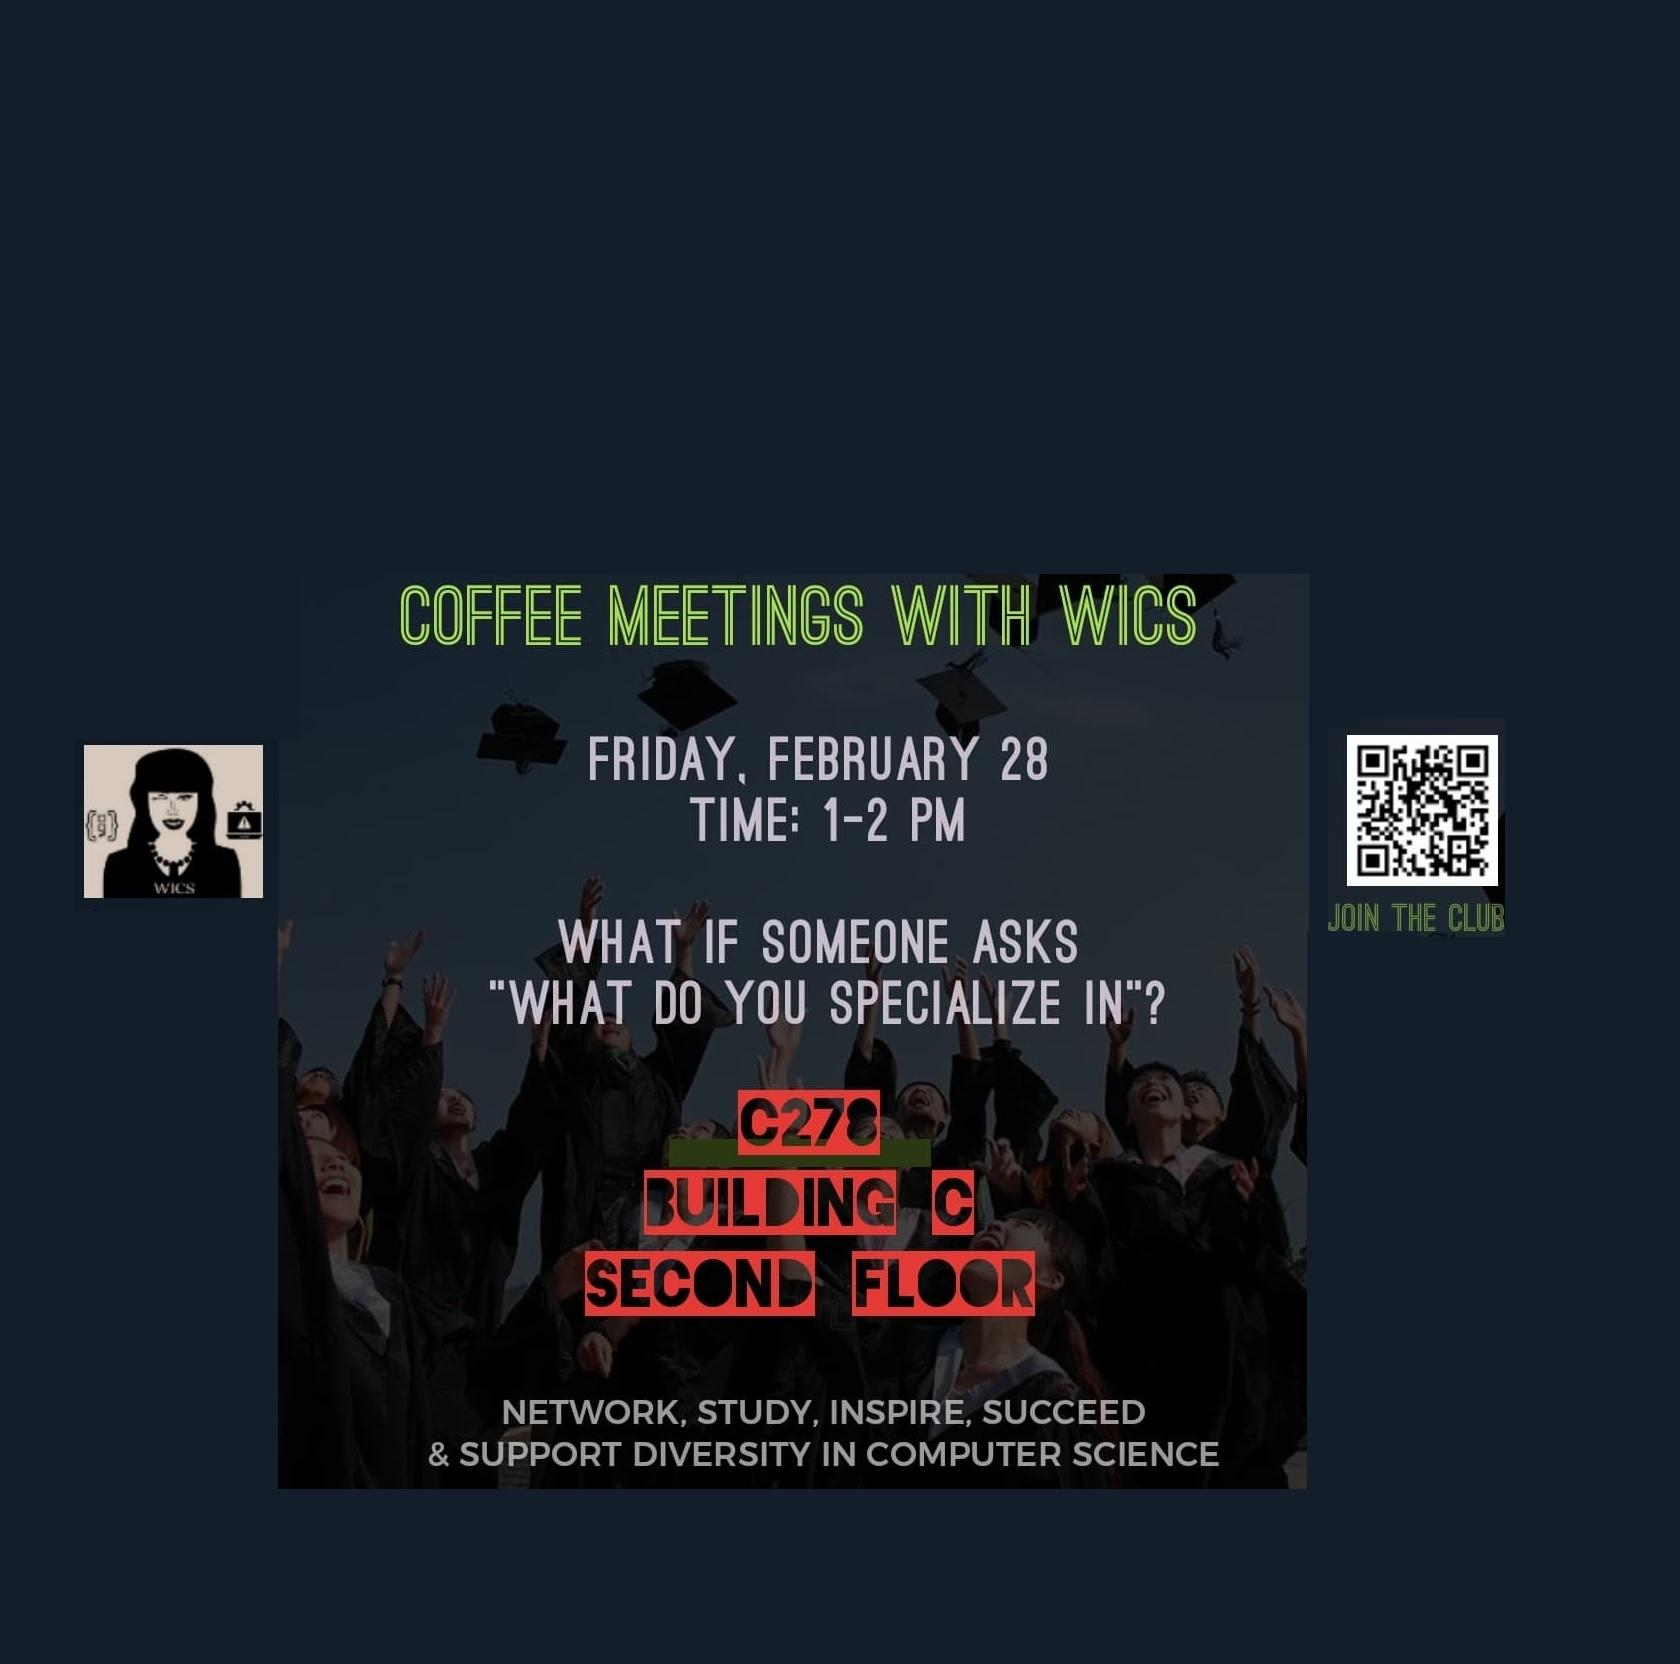 Coffee Meeting with WICS (Women in Computer Science)